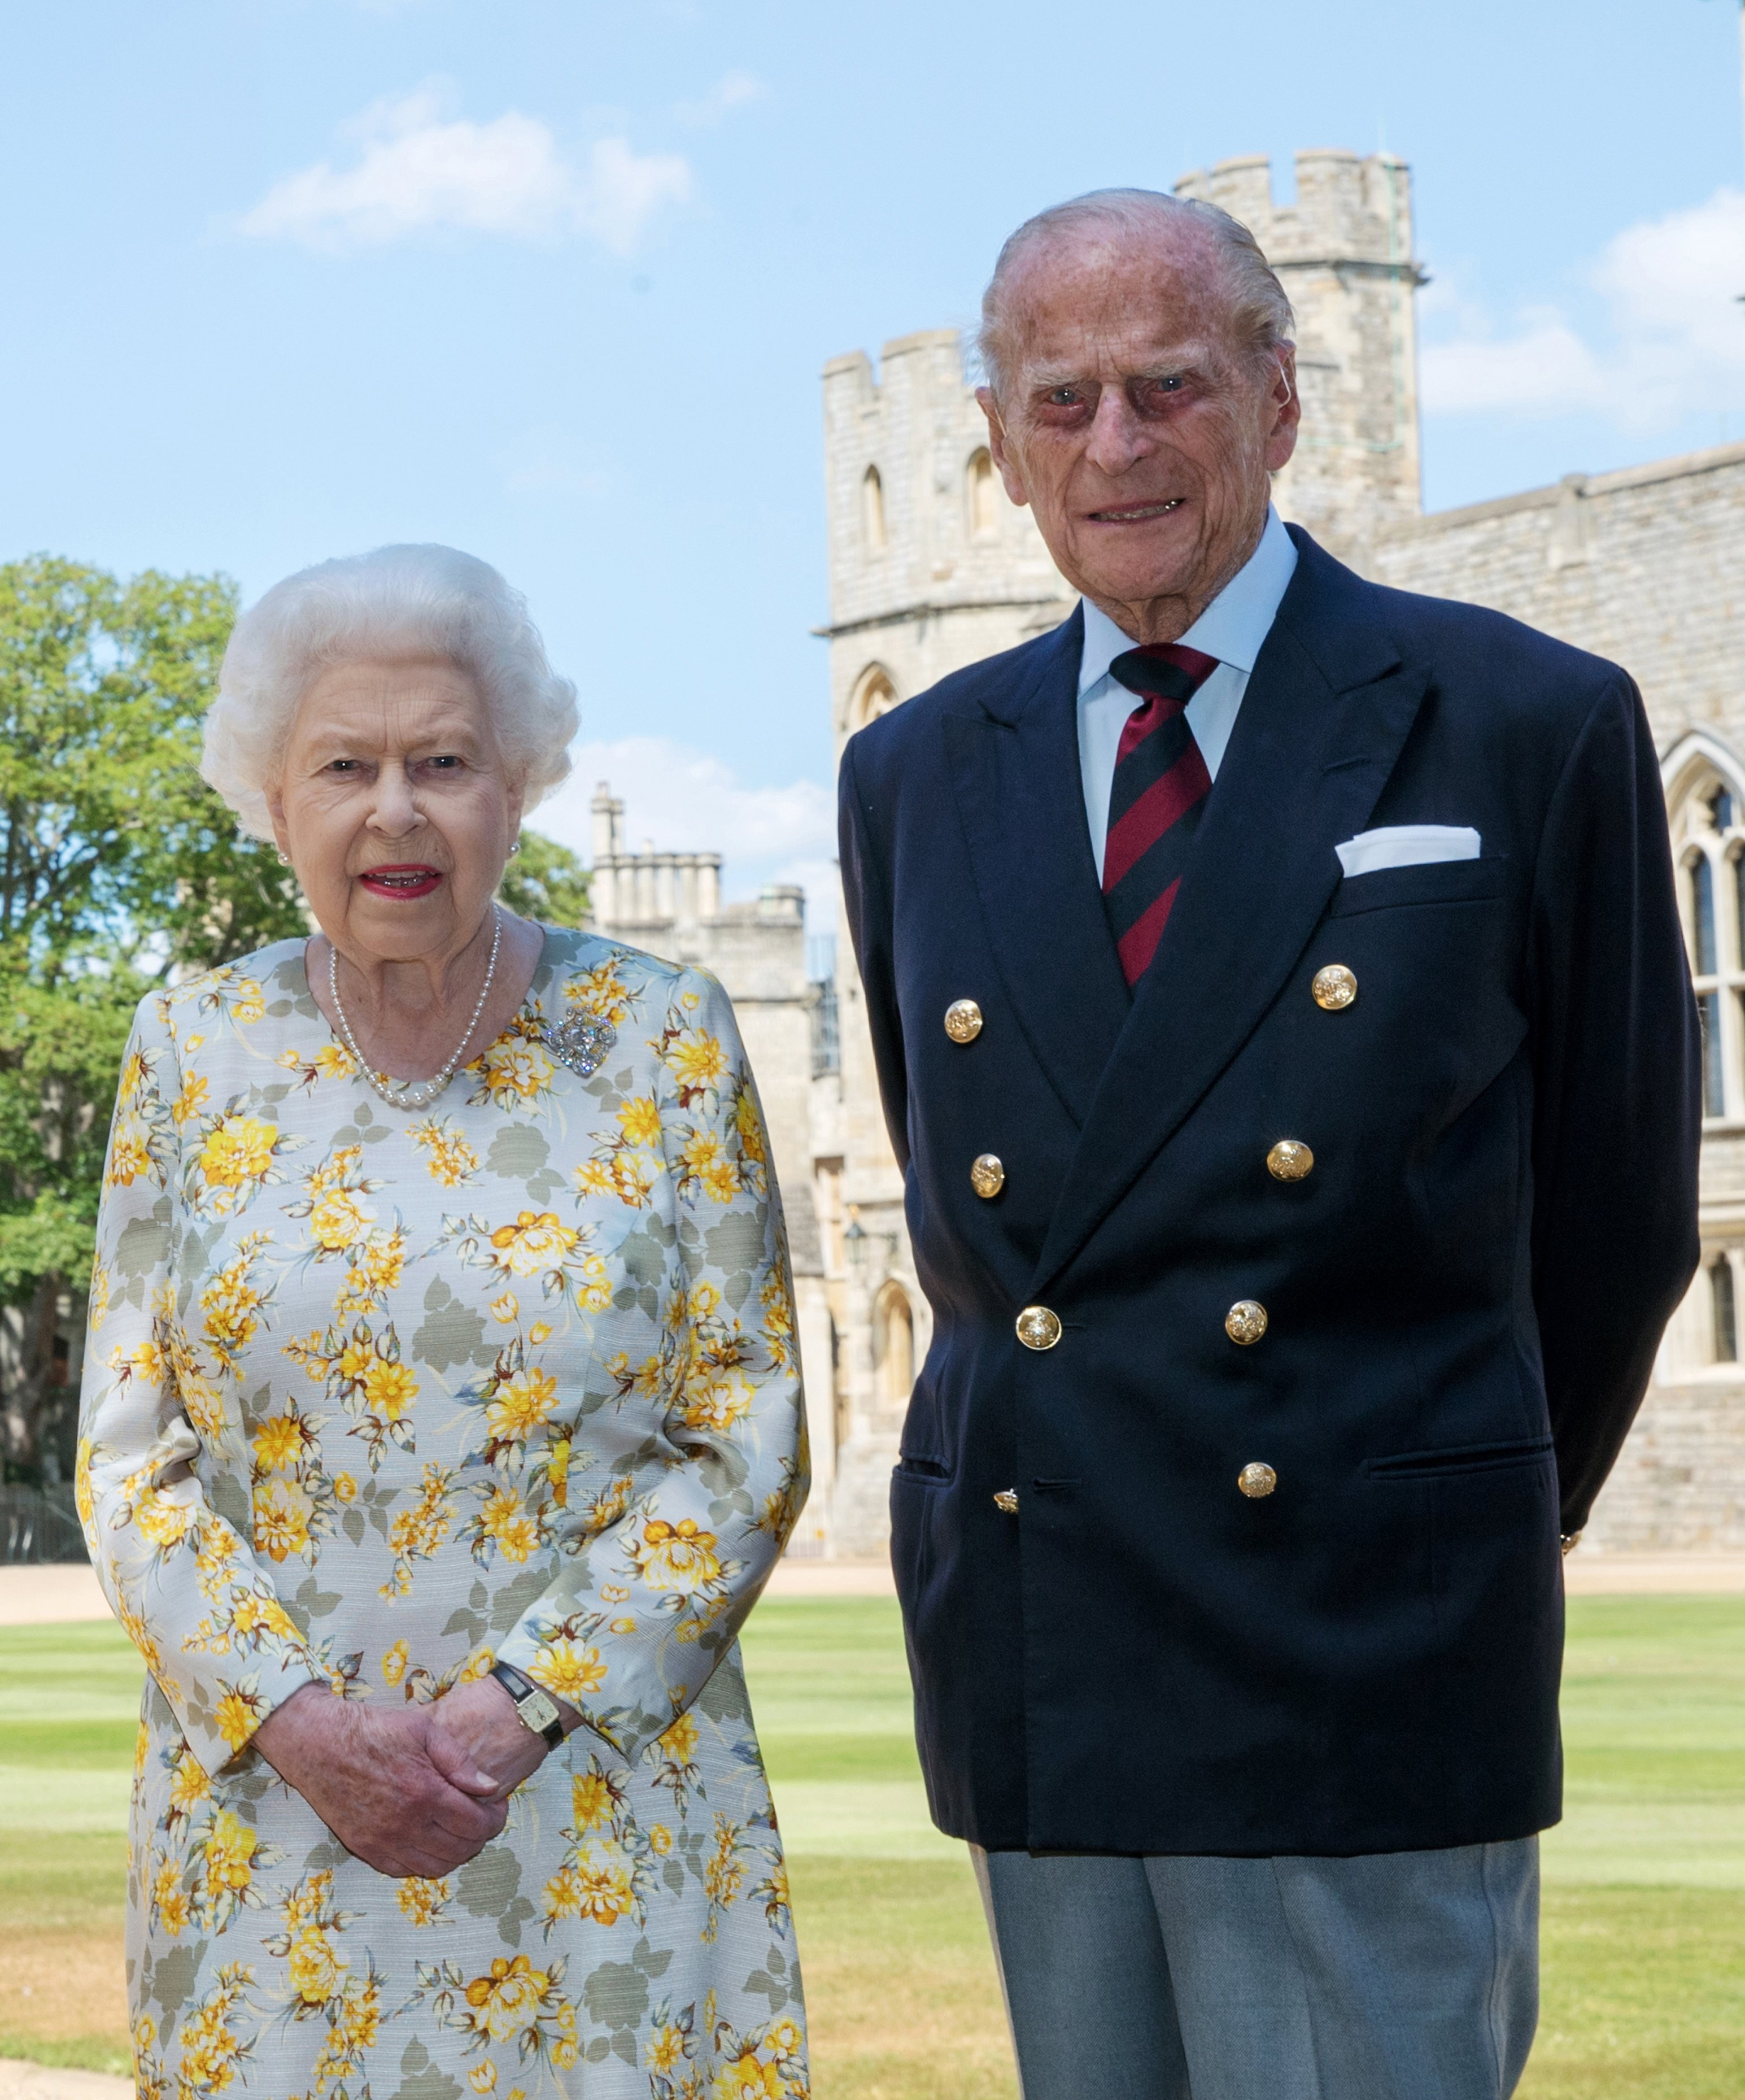 Queen Elizabeth II and the Duke of Edinburgh pose in the quadrangle of Windsor Castle ahead of his 99th birthday on Wednesday, on June 1, 2020, in Windsor, United Kingdom. | Source: Getty Images.